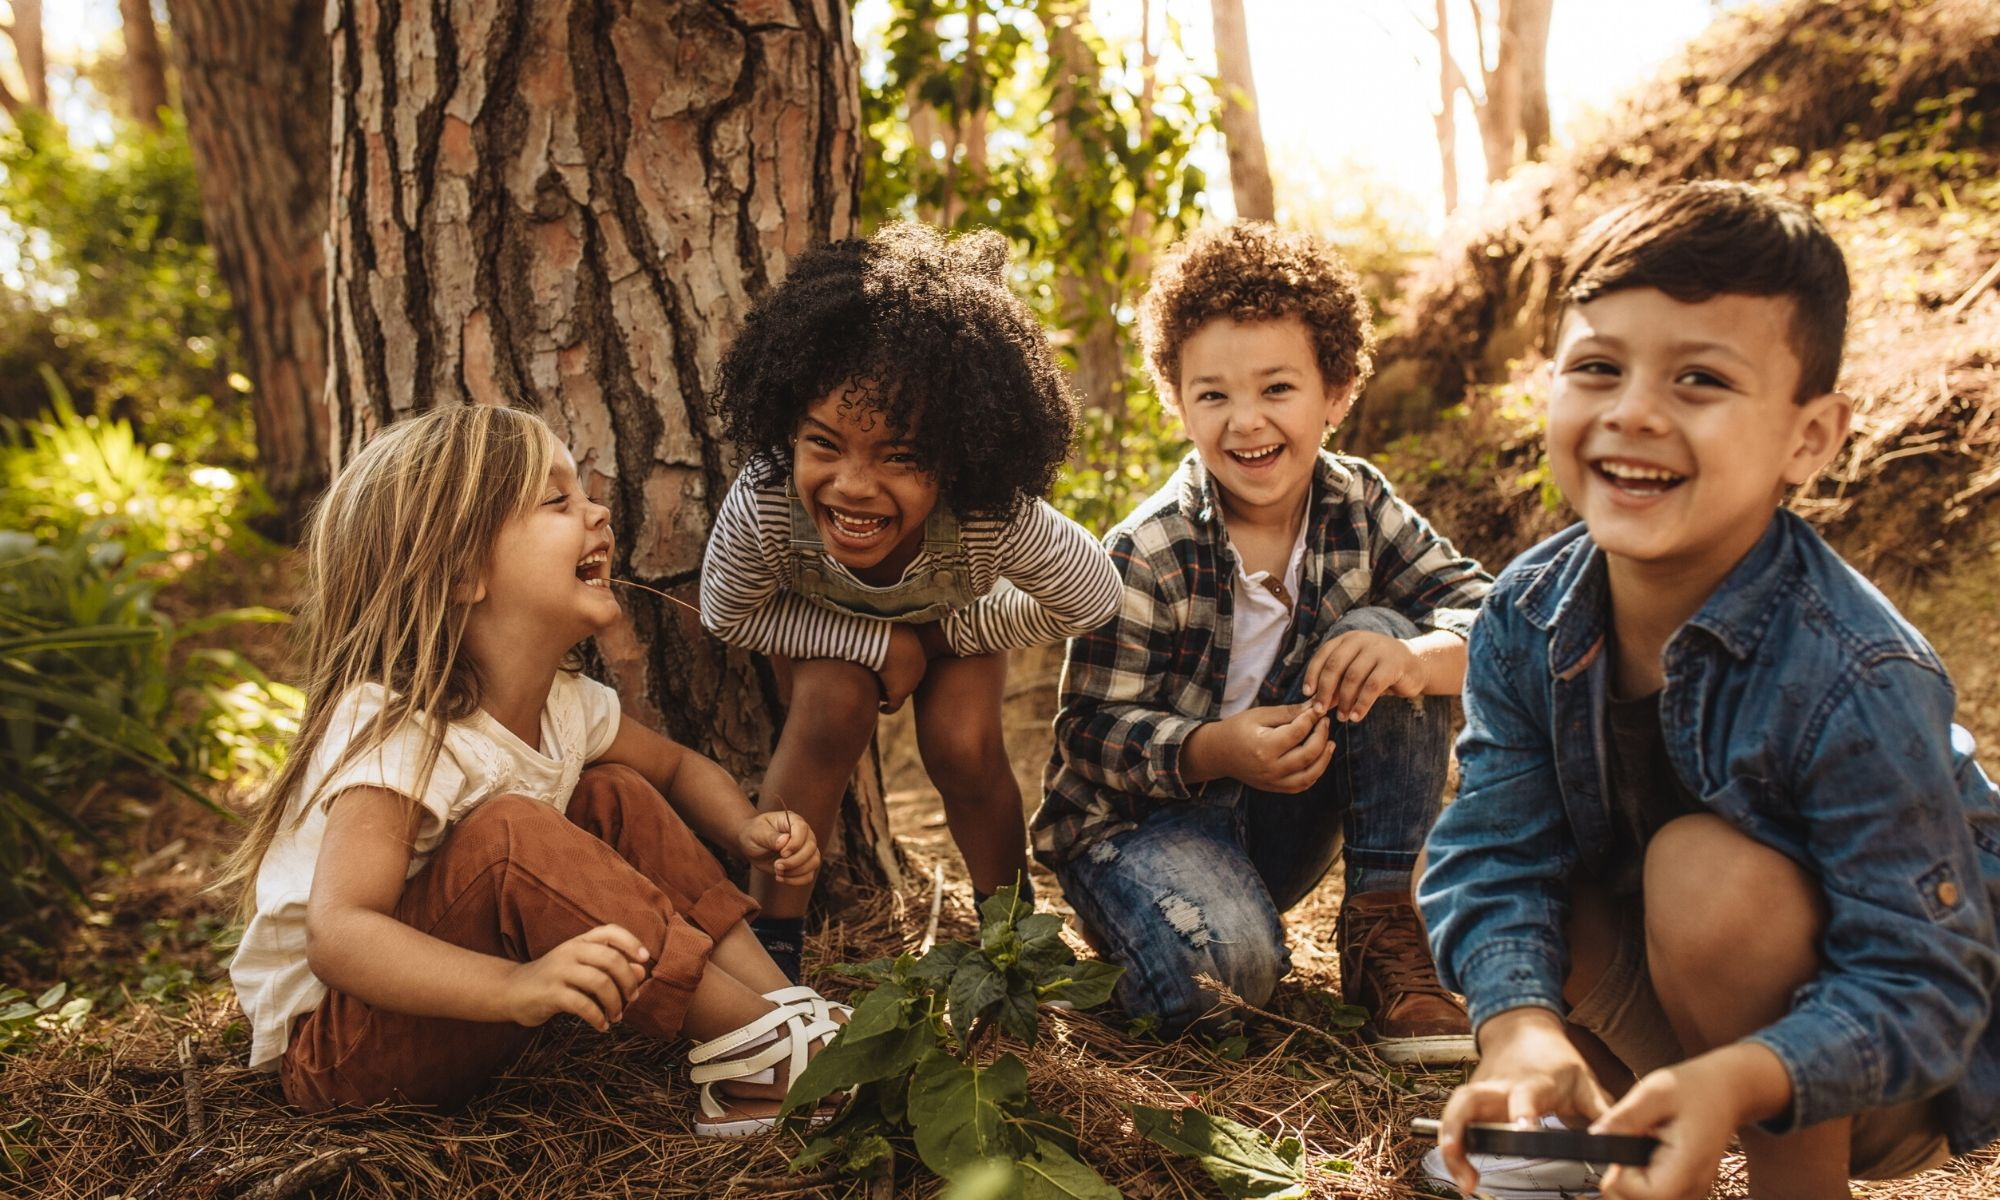 Toddlers of different races playing outdoors near a tree